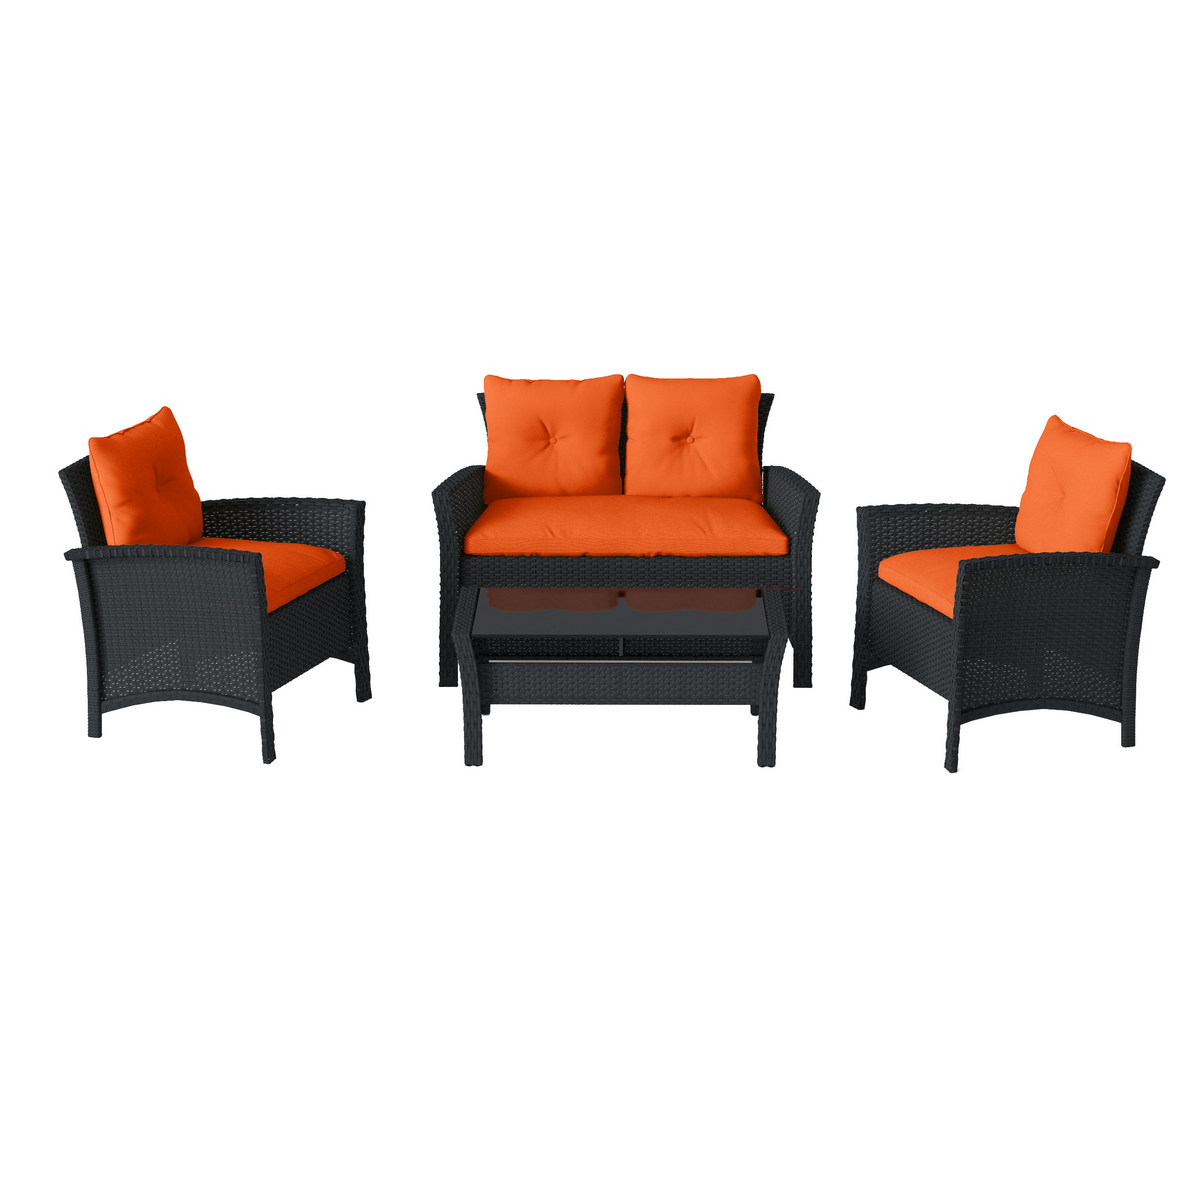 Corliving Patio Set Resin Rattan Wicker Orange